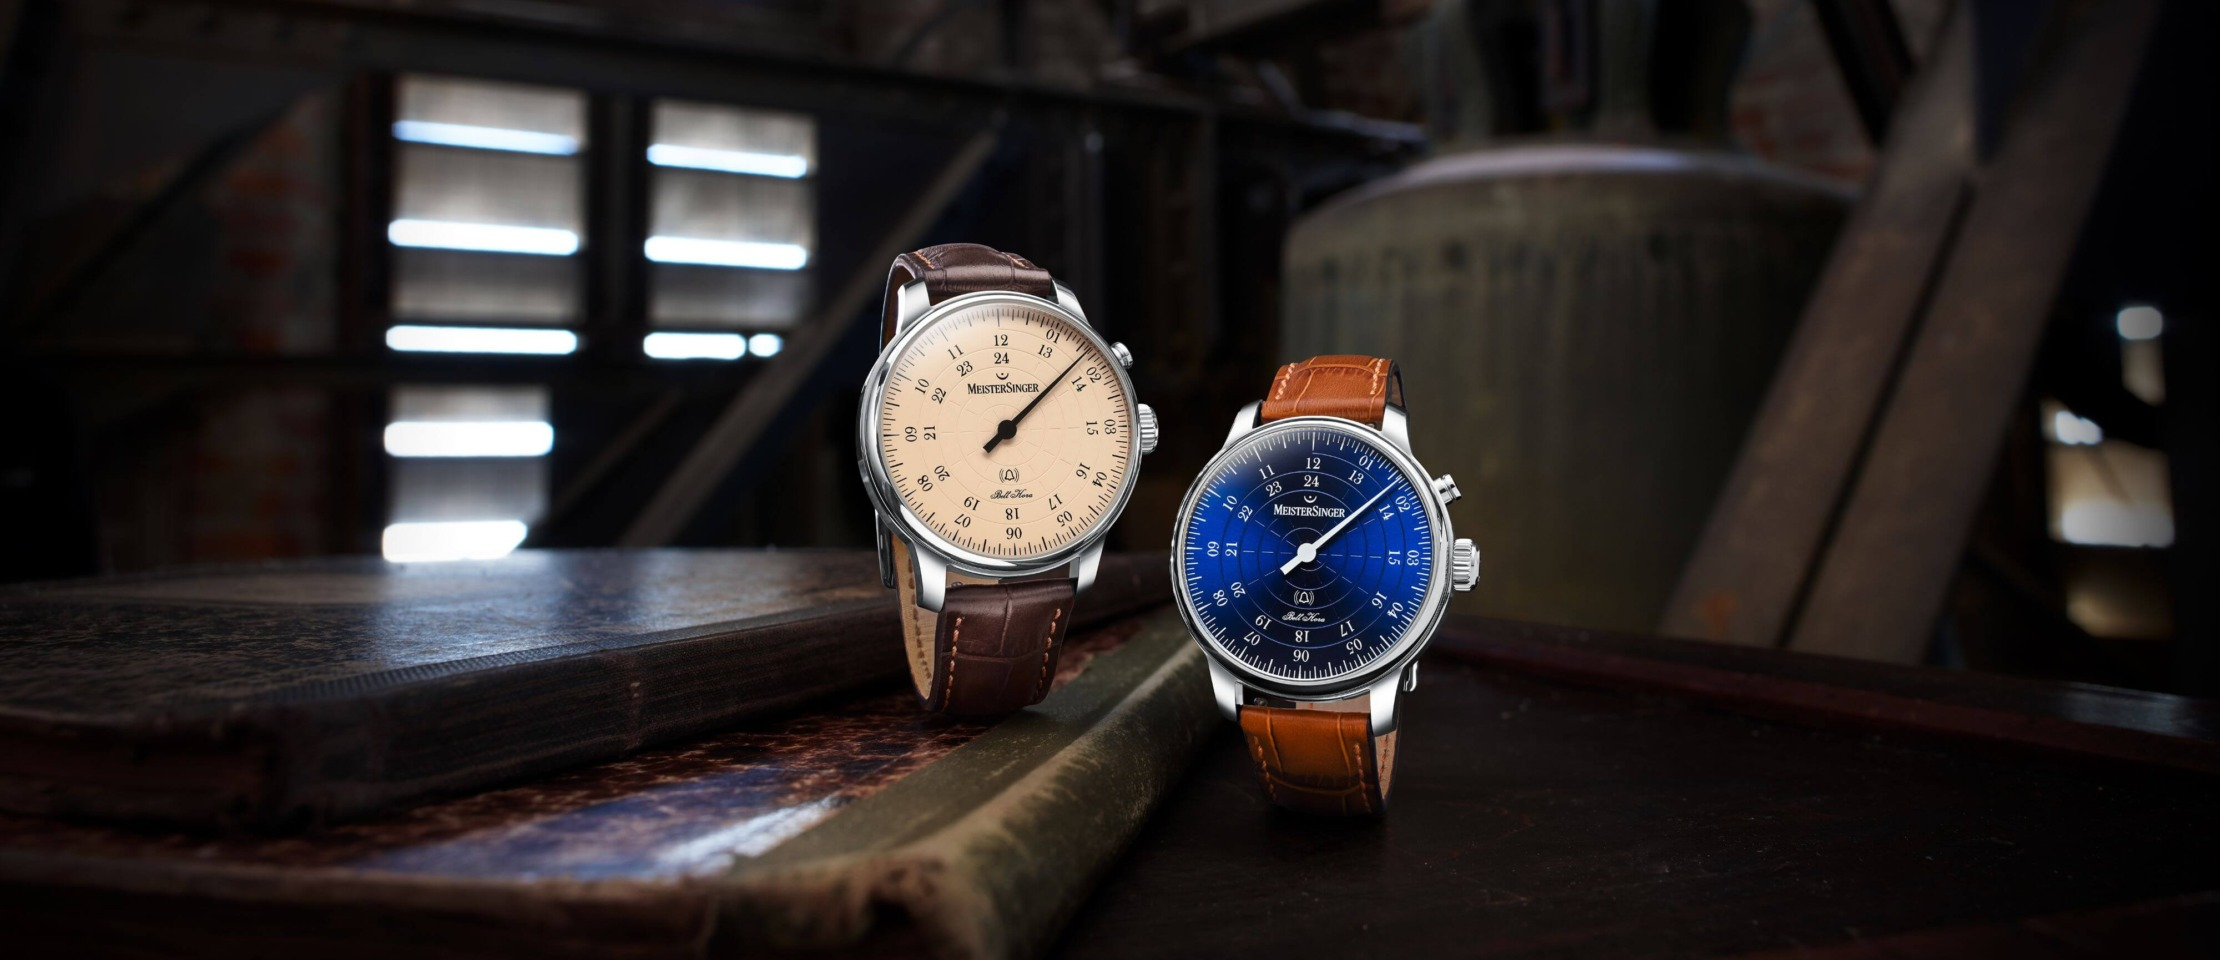 MeisterSinger Bell Hora Award-winning single-hand watch with rare acoustic hour strike